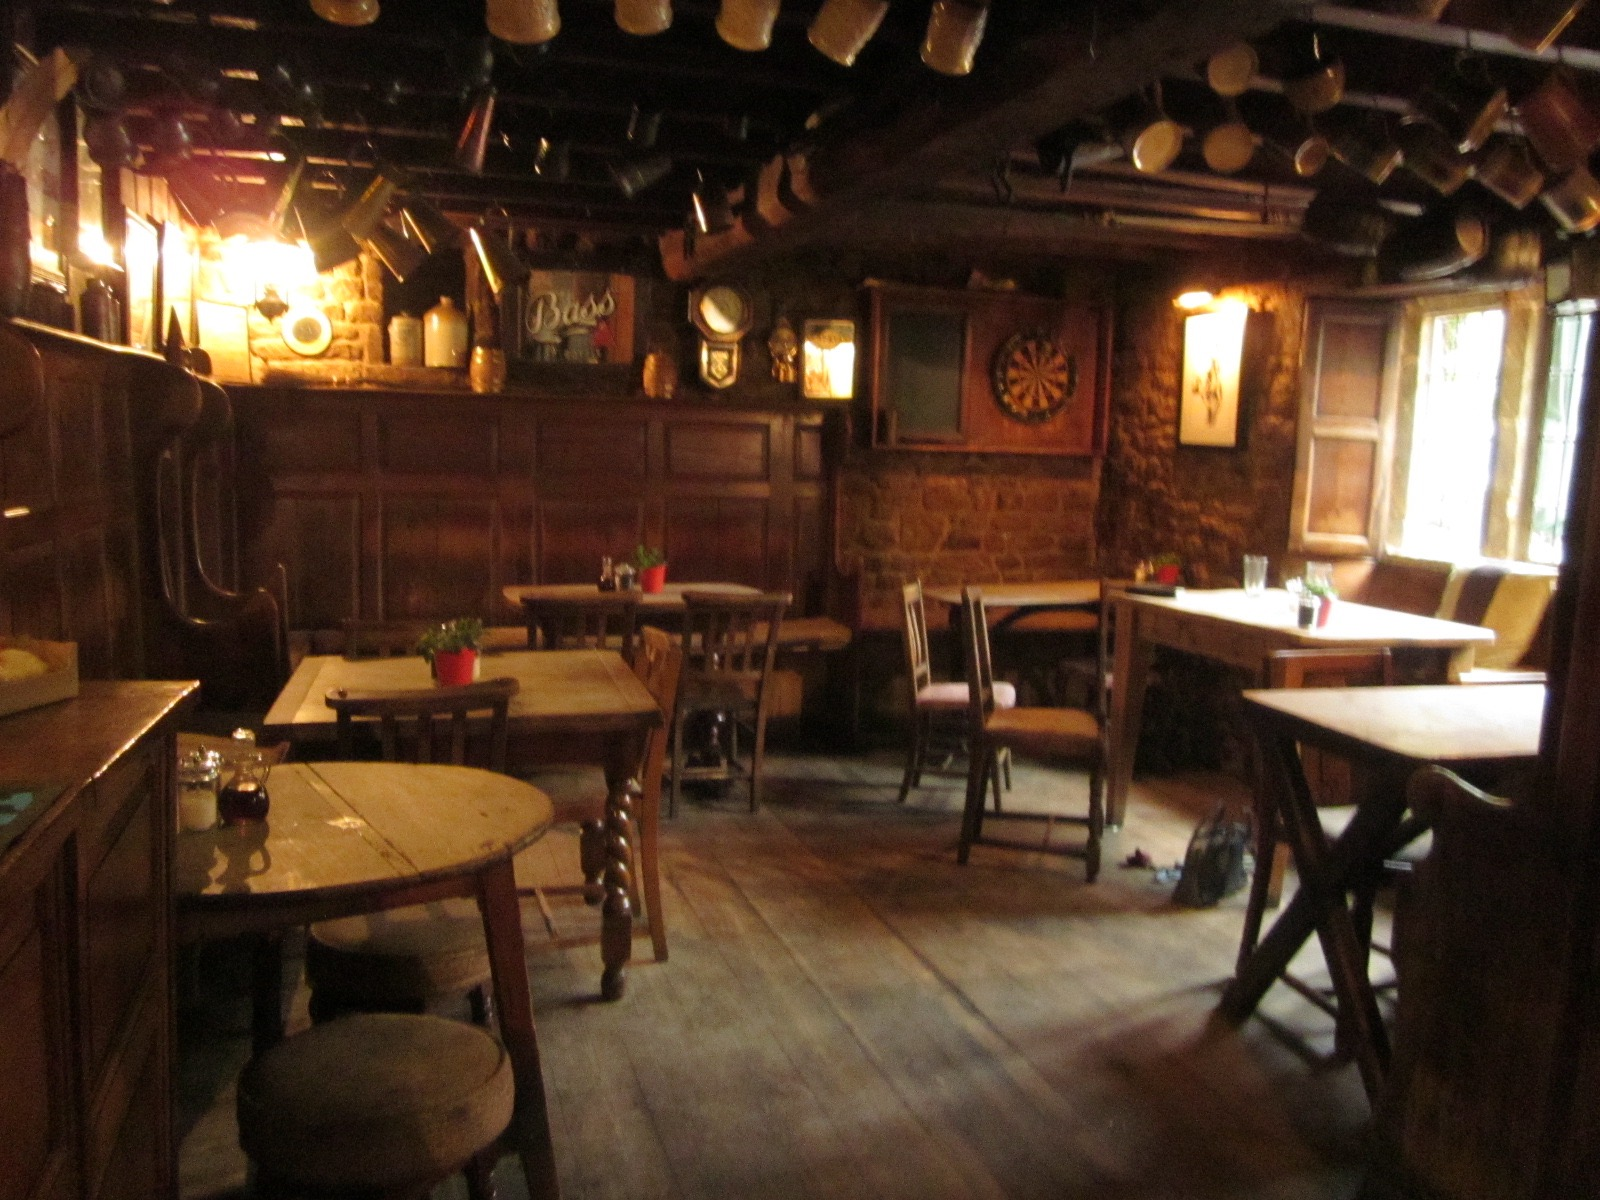 The Falkland Arms in Great Tew, a beautiful old pub, that looks movie-set perfect.